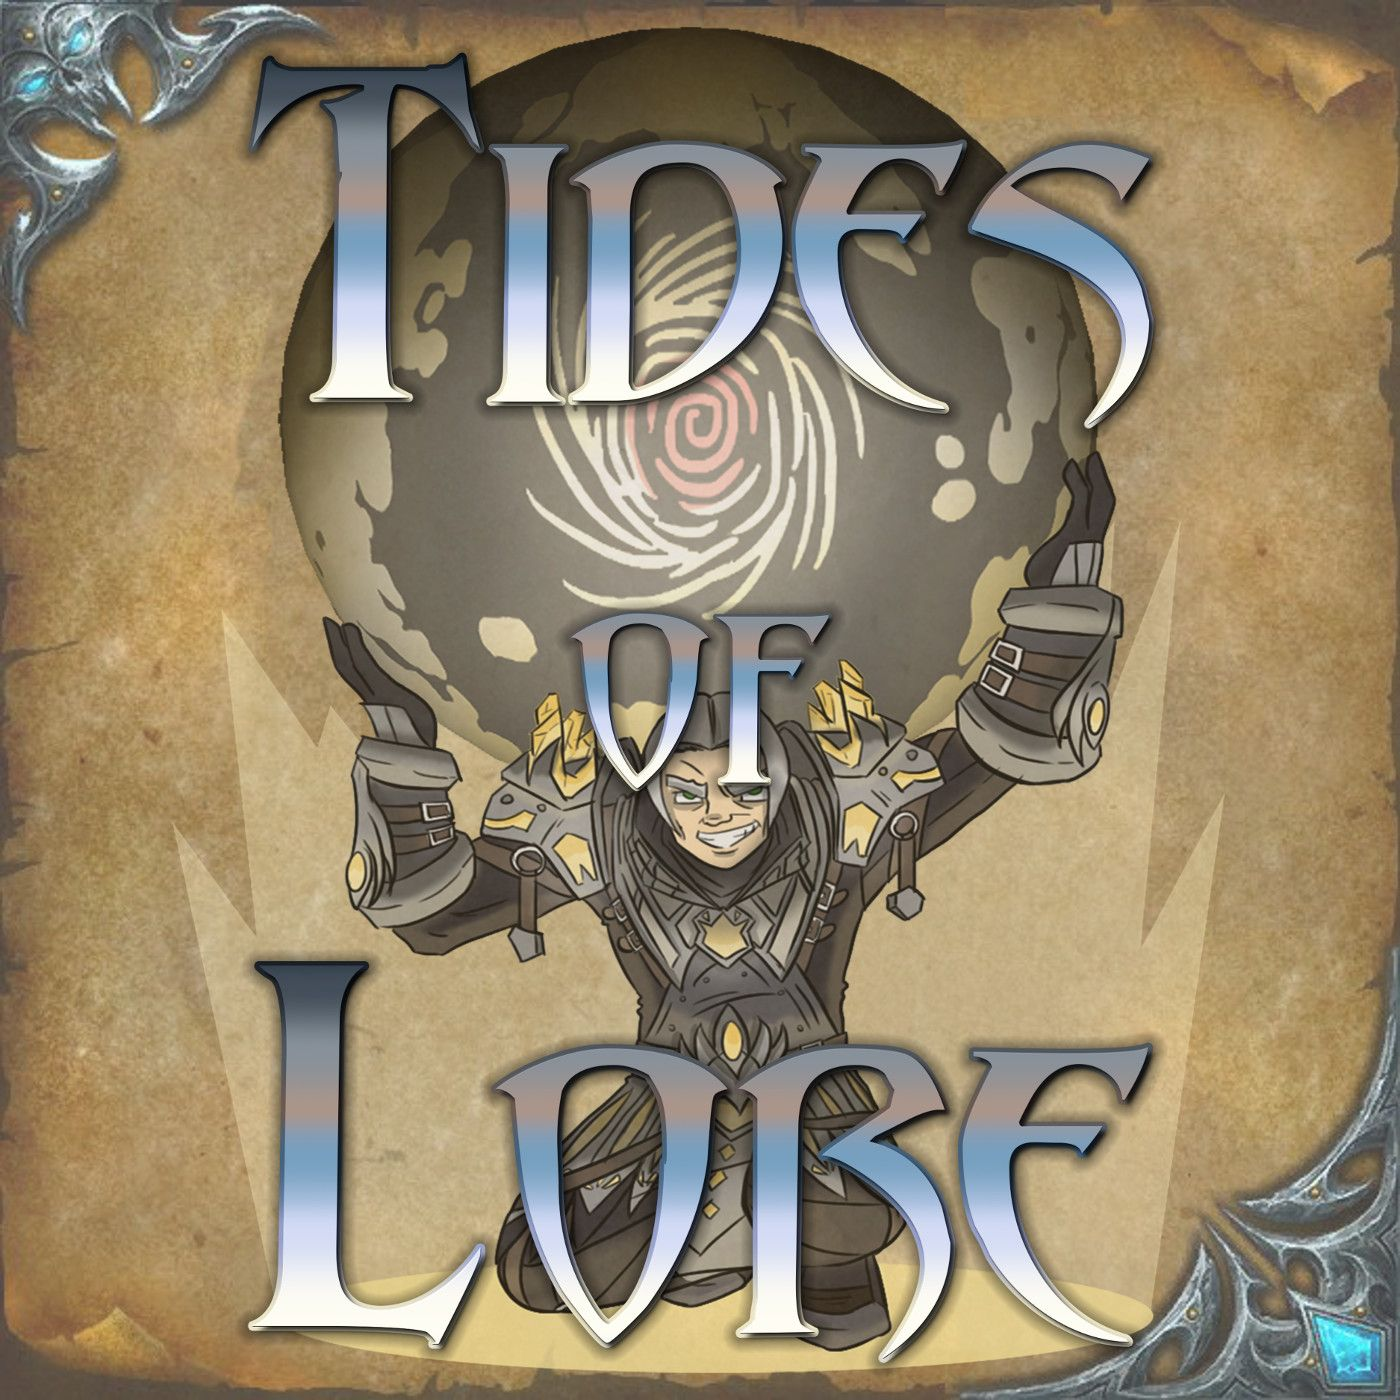 Tides of Lore